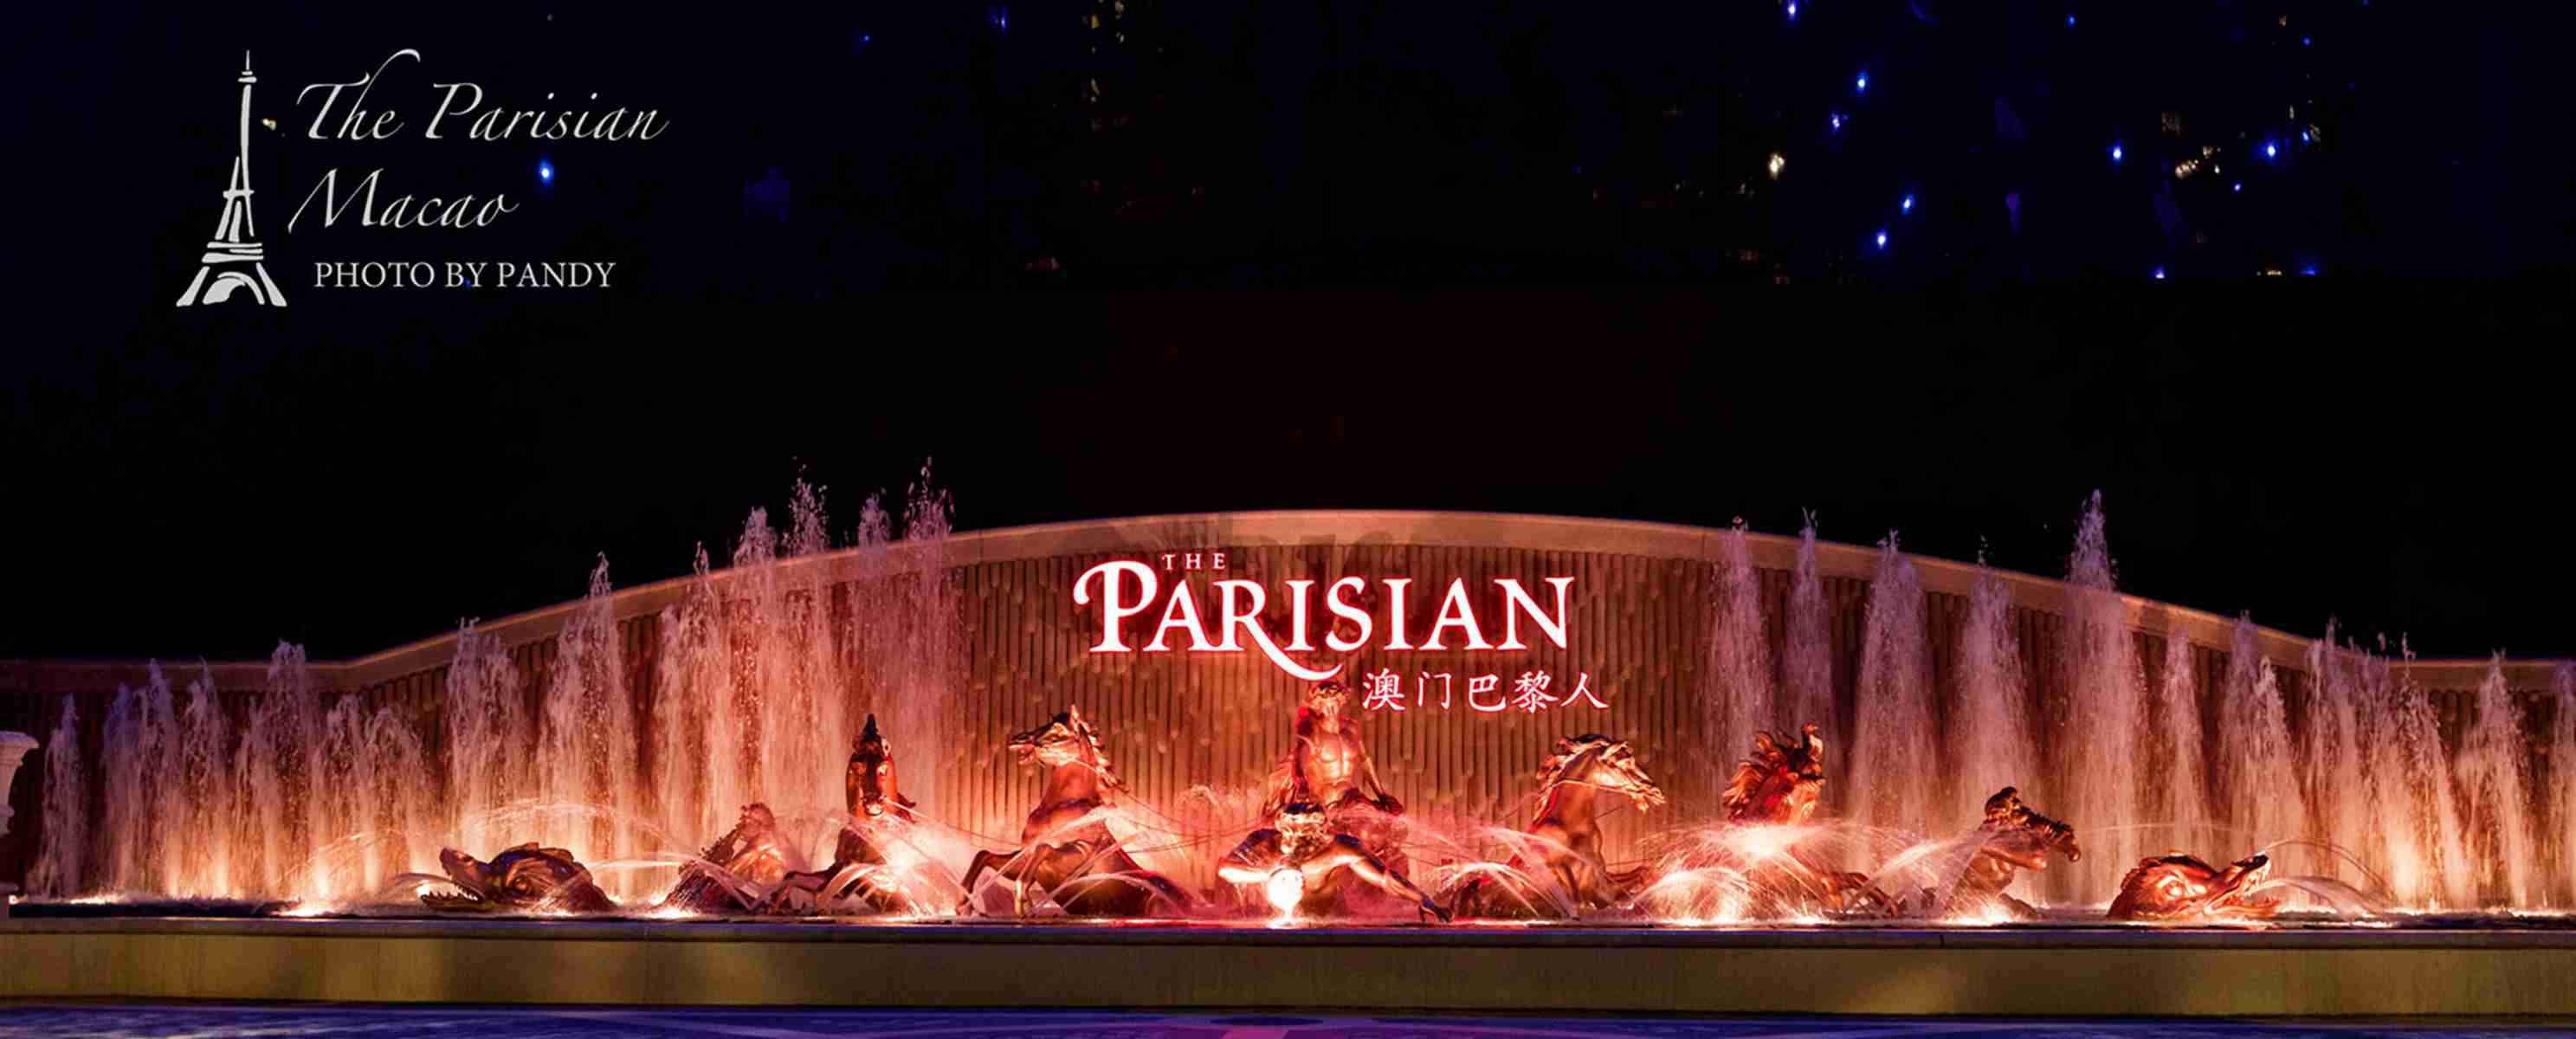 Dream of Paris at the Parisian Macao